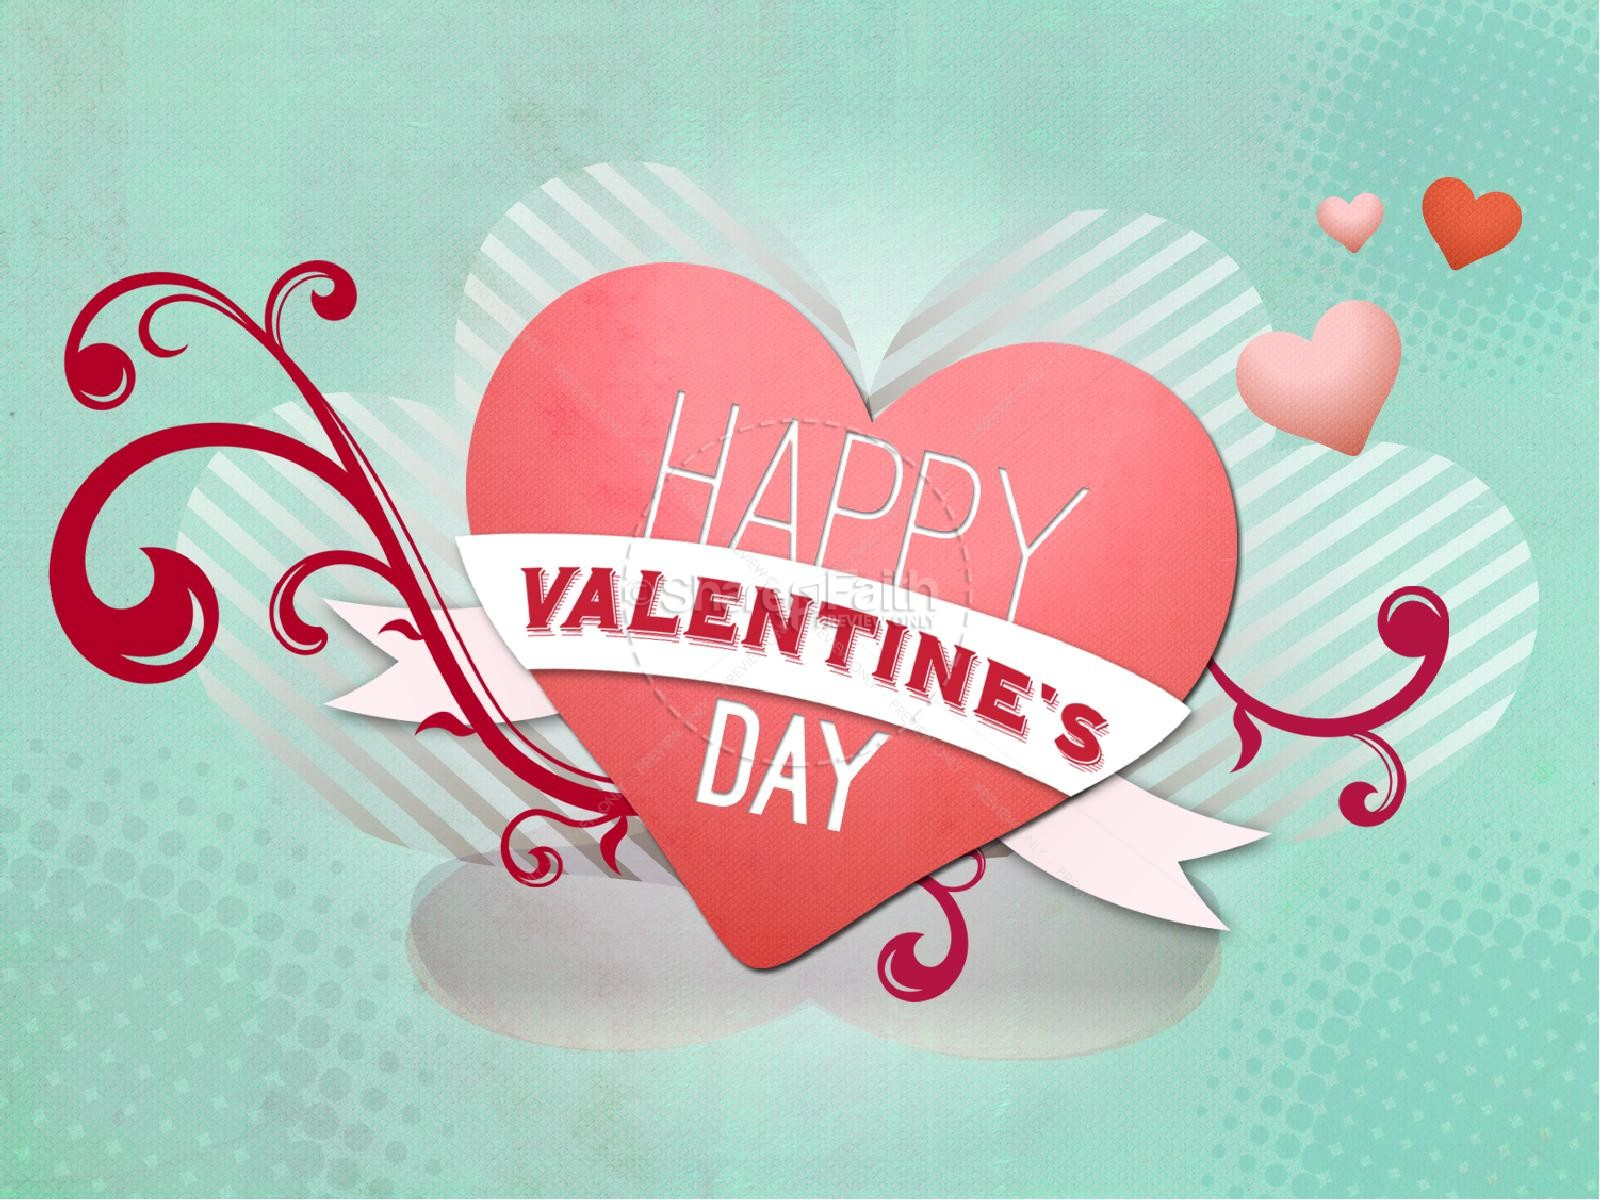 Valentines Day Clip Art For Church Bulletins Clipart.